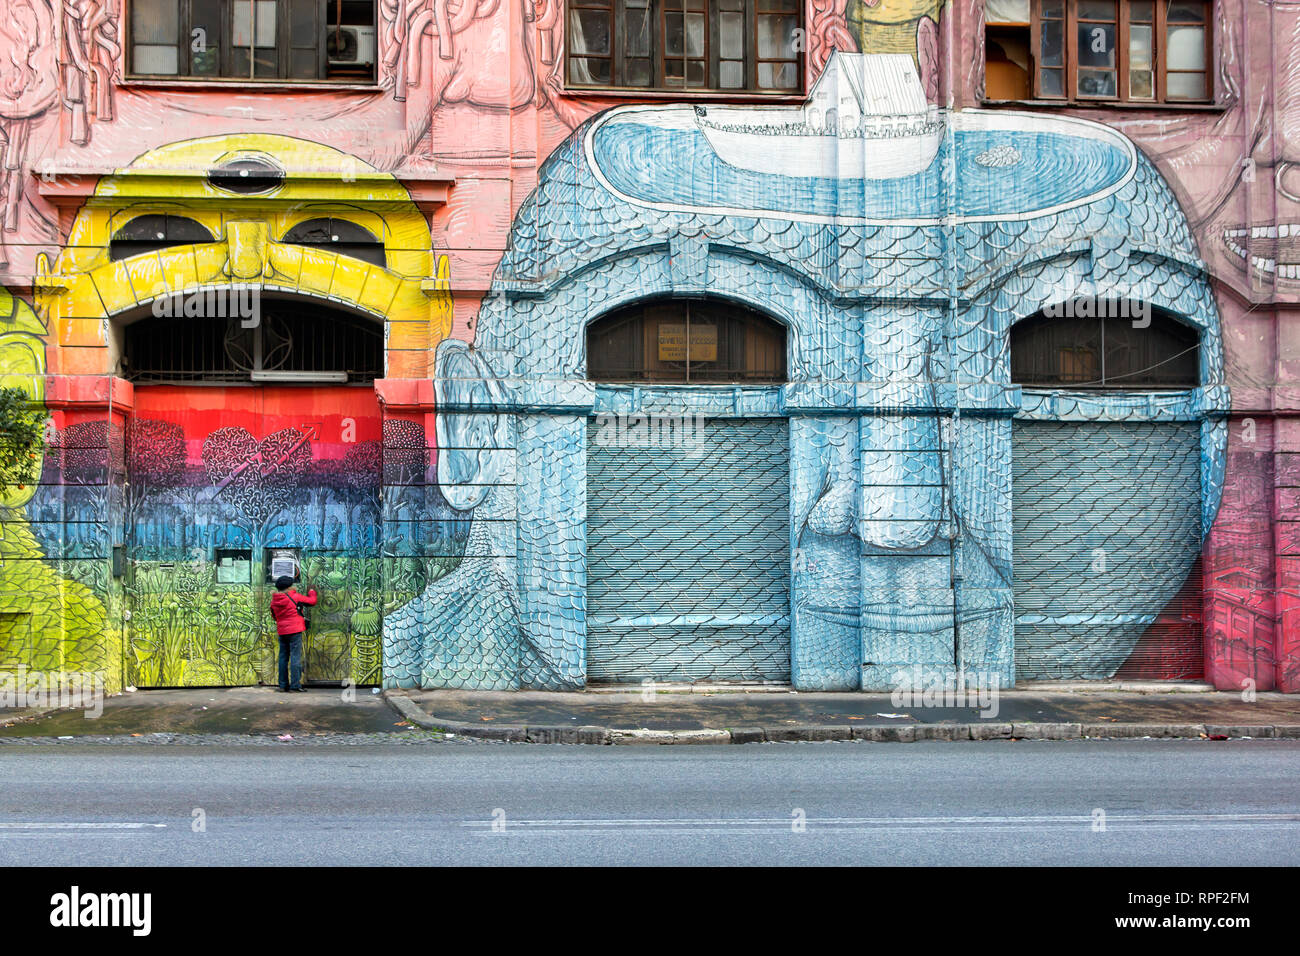 ROME - A squated former military barrack in Ostiense is covered with gigantic alien faces by Italian artist BLU. - Stock Image